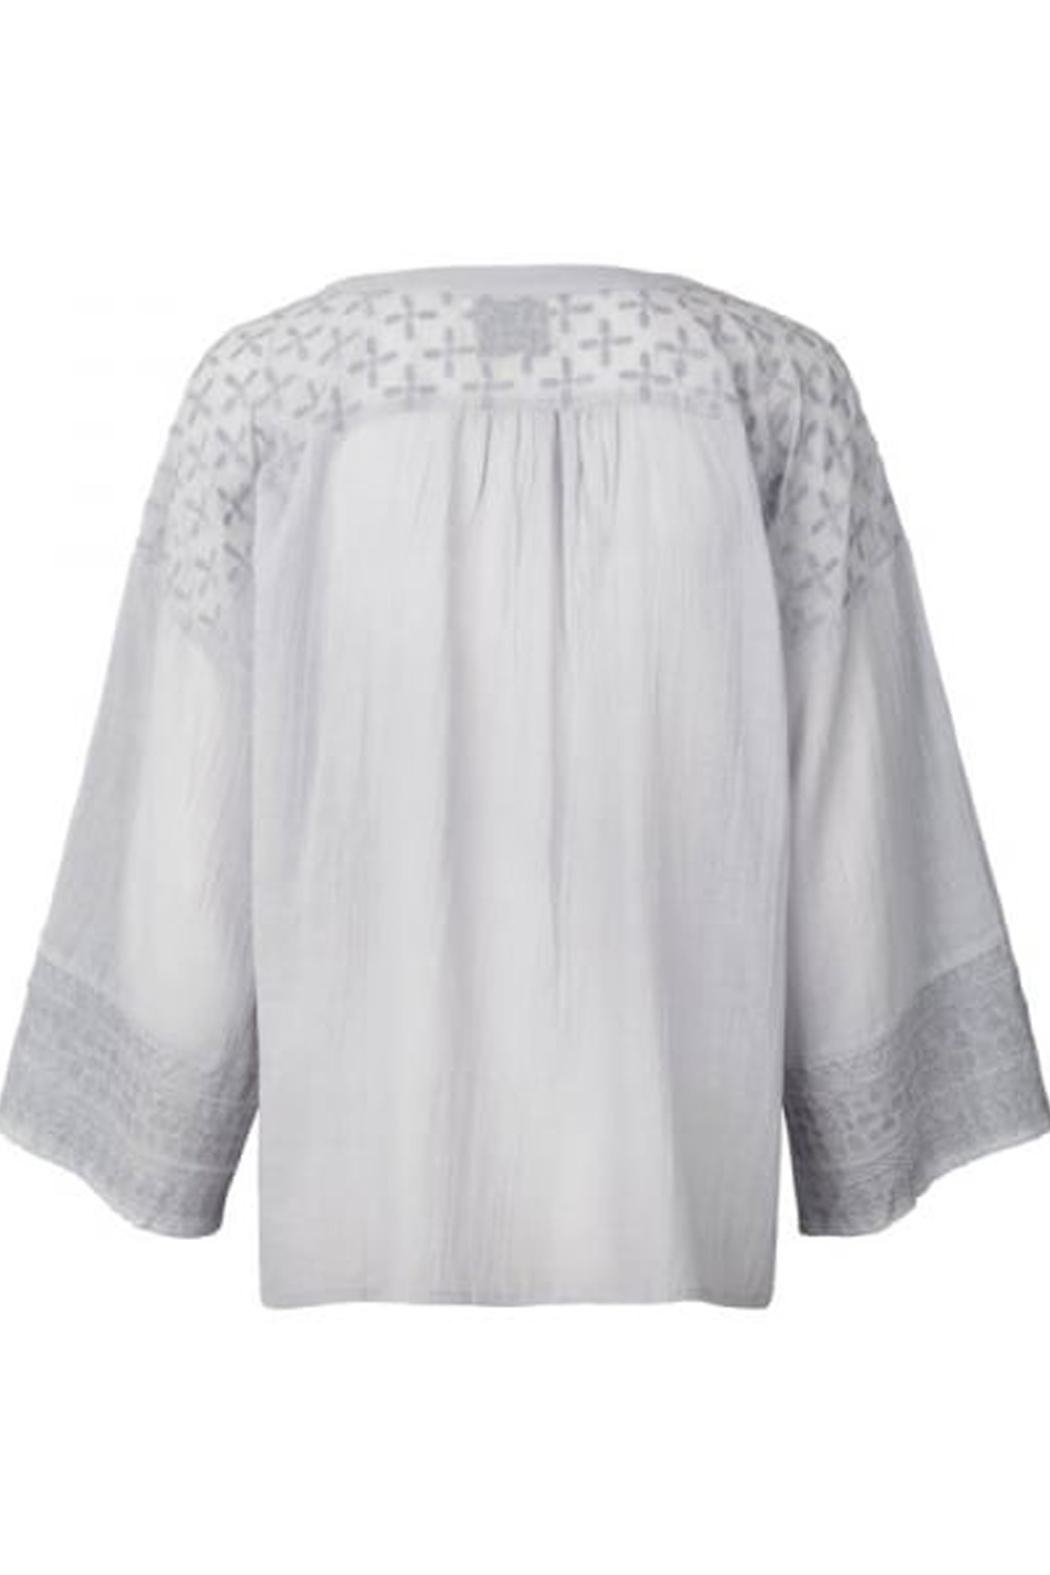 LOLLYS LAUNDRY Bohemian Blouse - Front Full Image